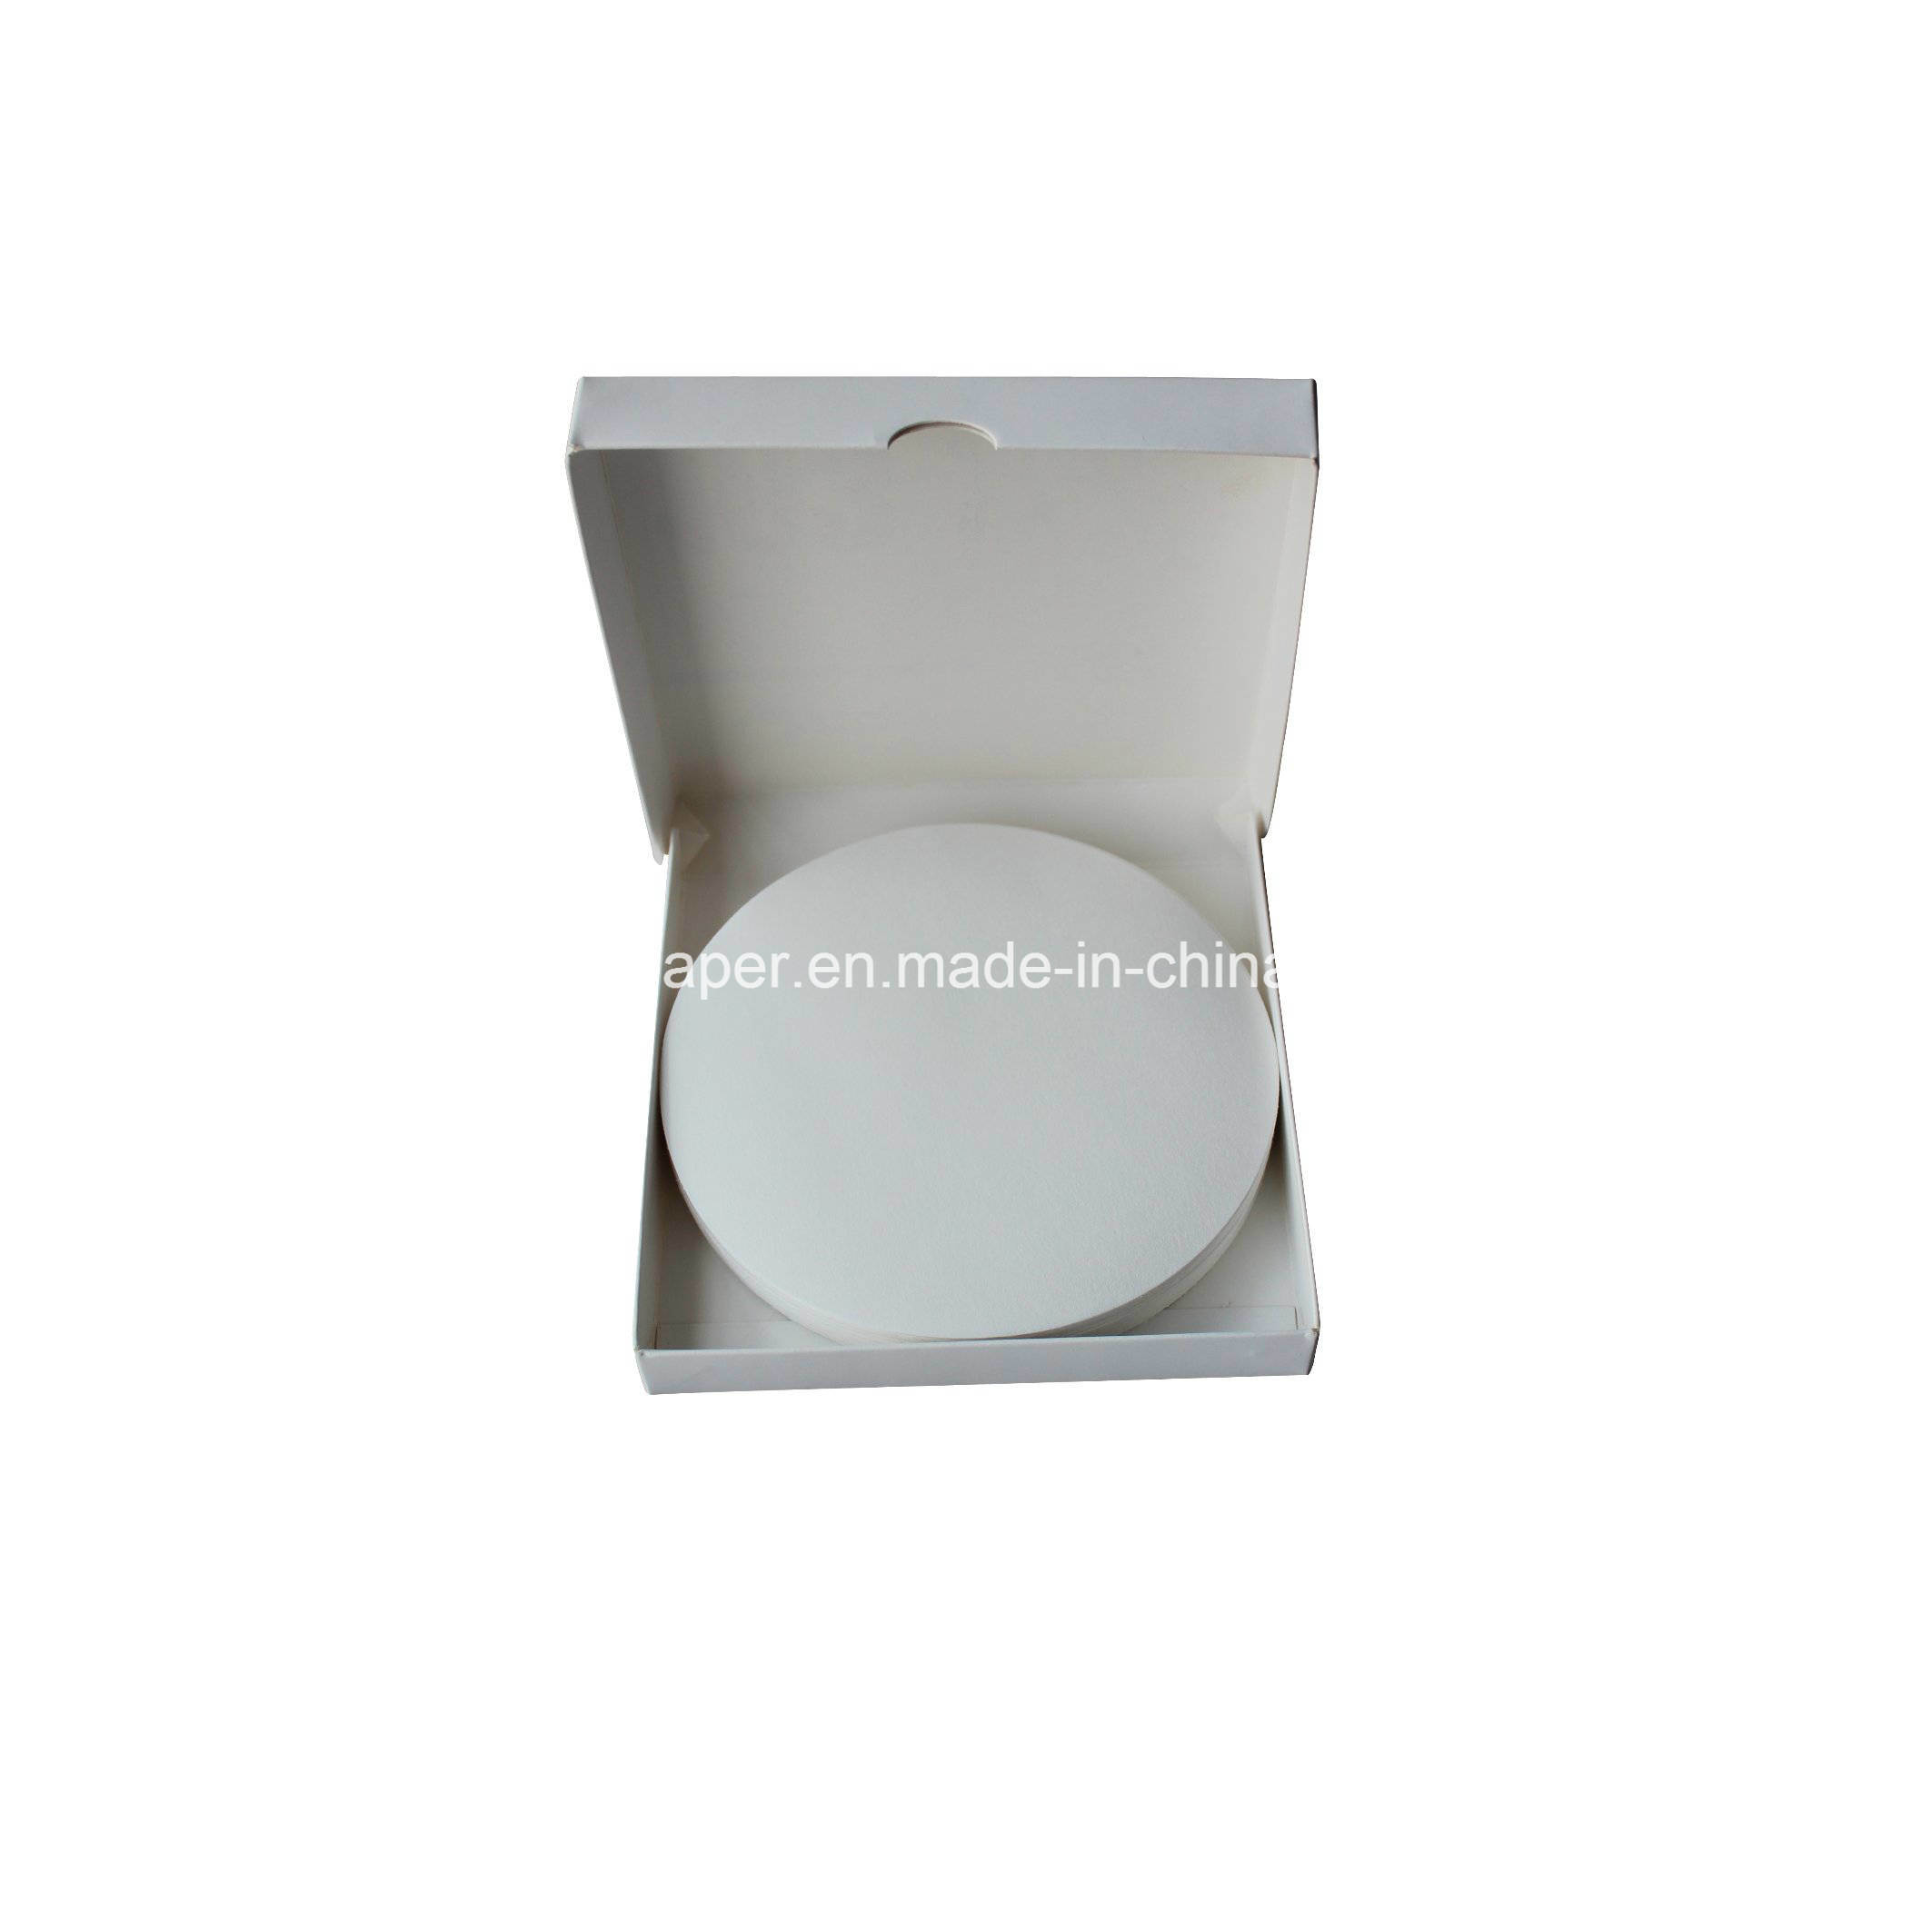 Laboratory Ashless Cotton Cellulose 45mm Quantitative Filter Paper